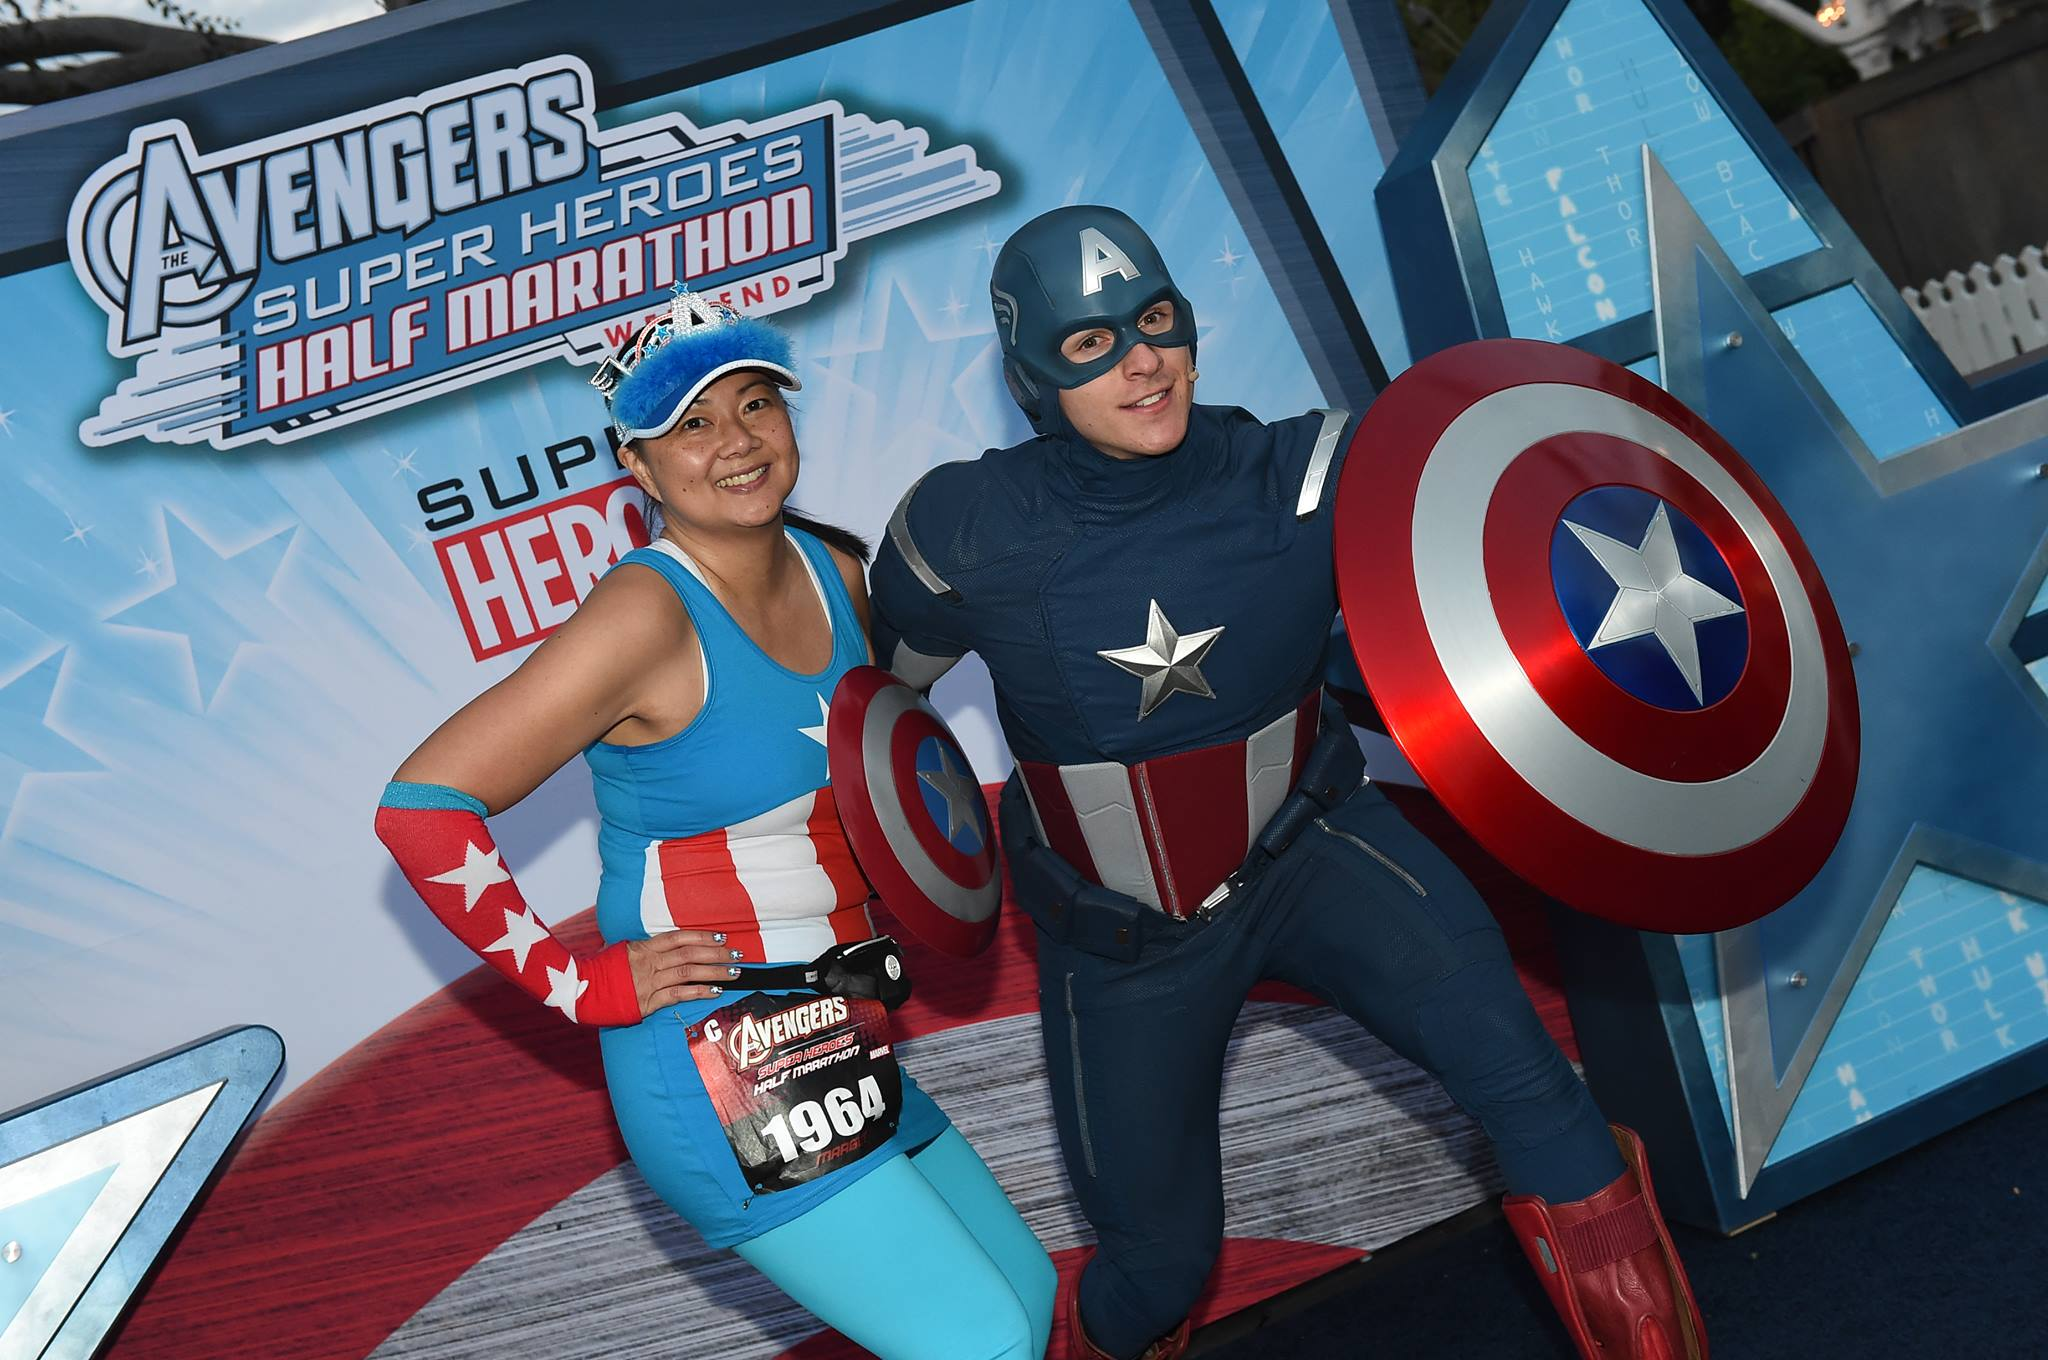 Avengers Join Forces with More Heroes for the runDisney Super Heroes Half Marathon Weekend at the Disneyland Resort